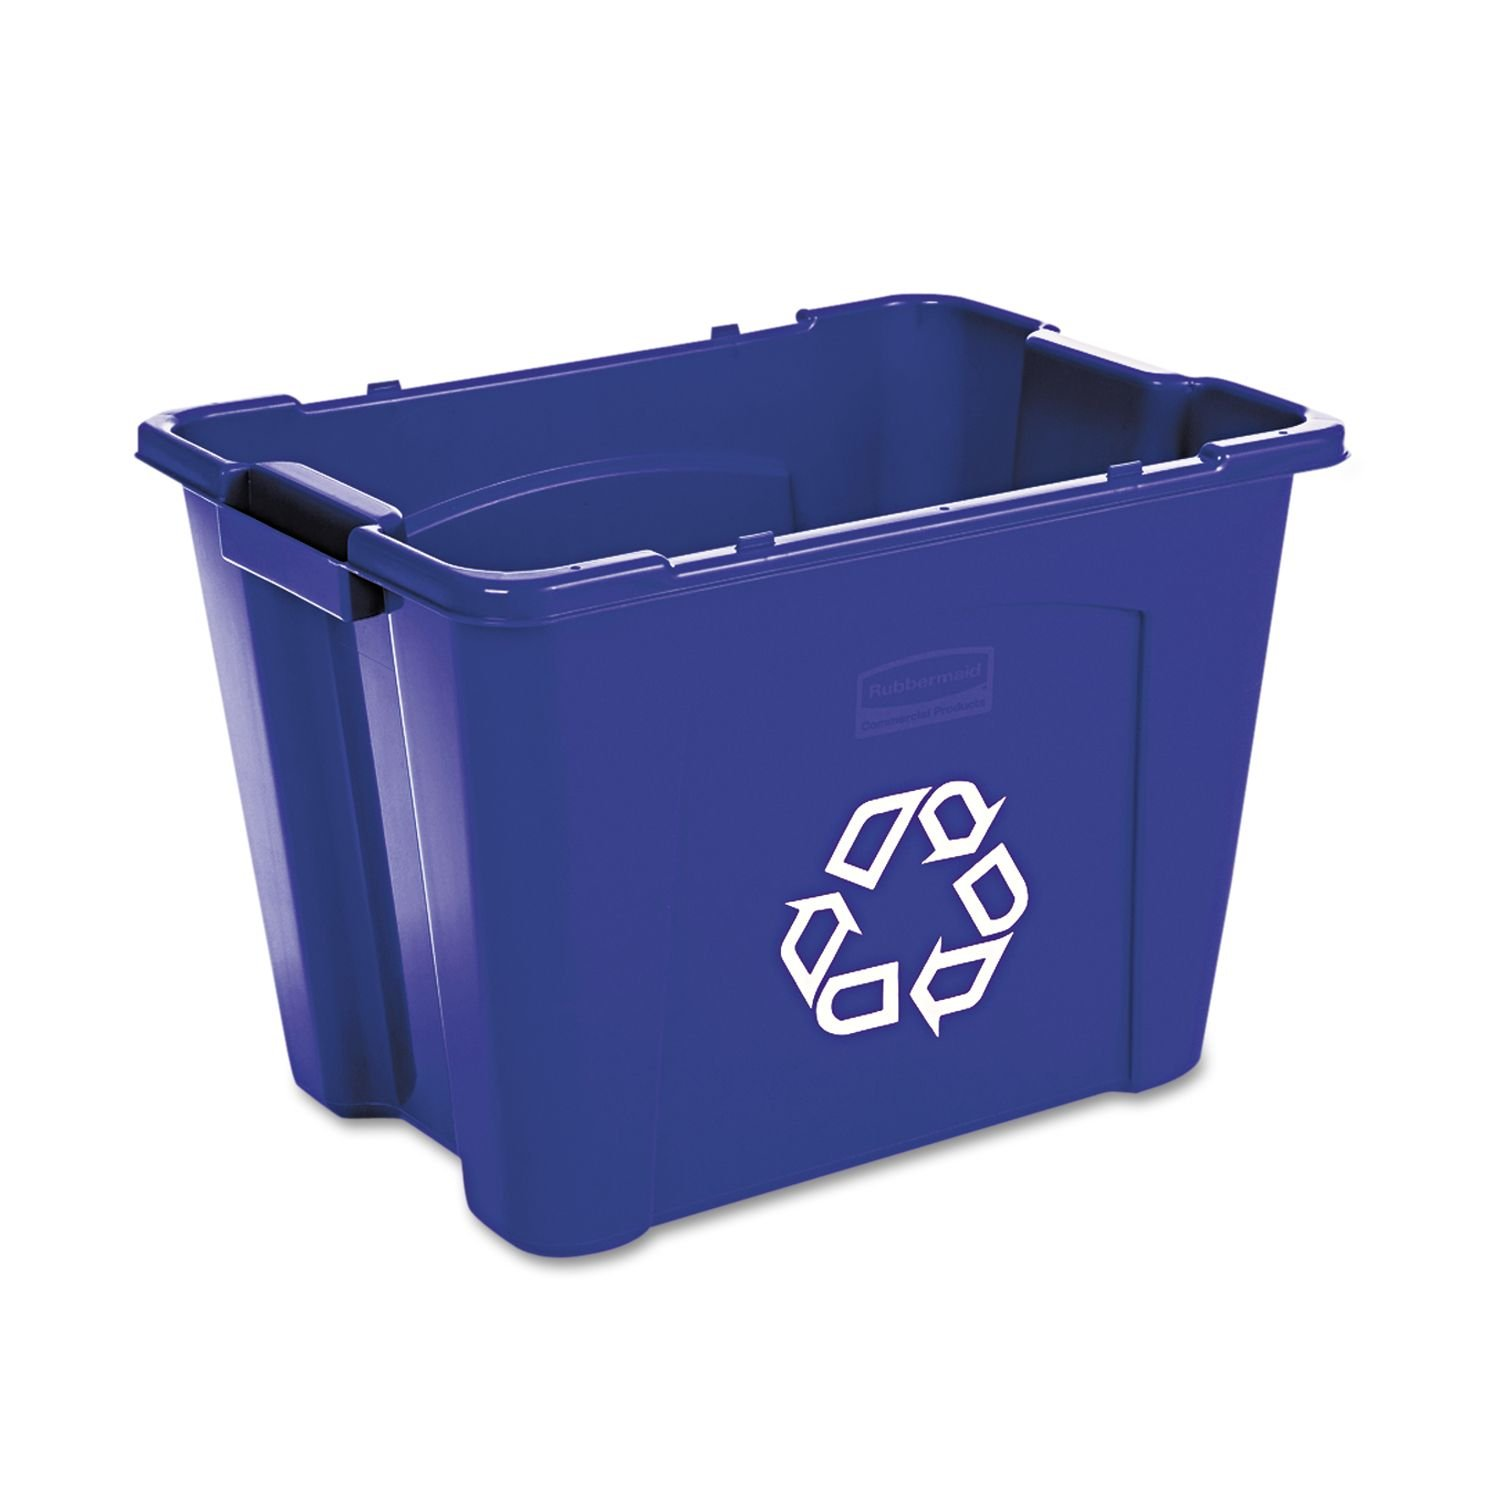 Blue Recycle Bins, Stackable - 14 gallons, Trash, Organizer, Garbage, Waste